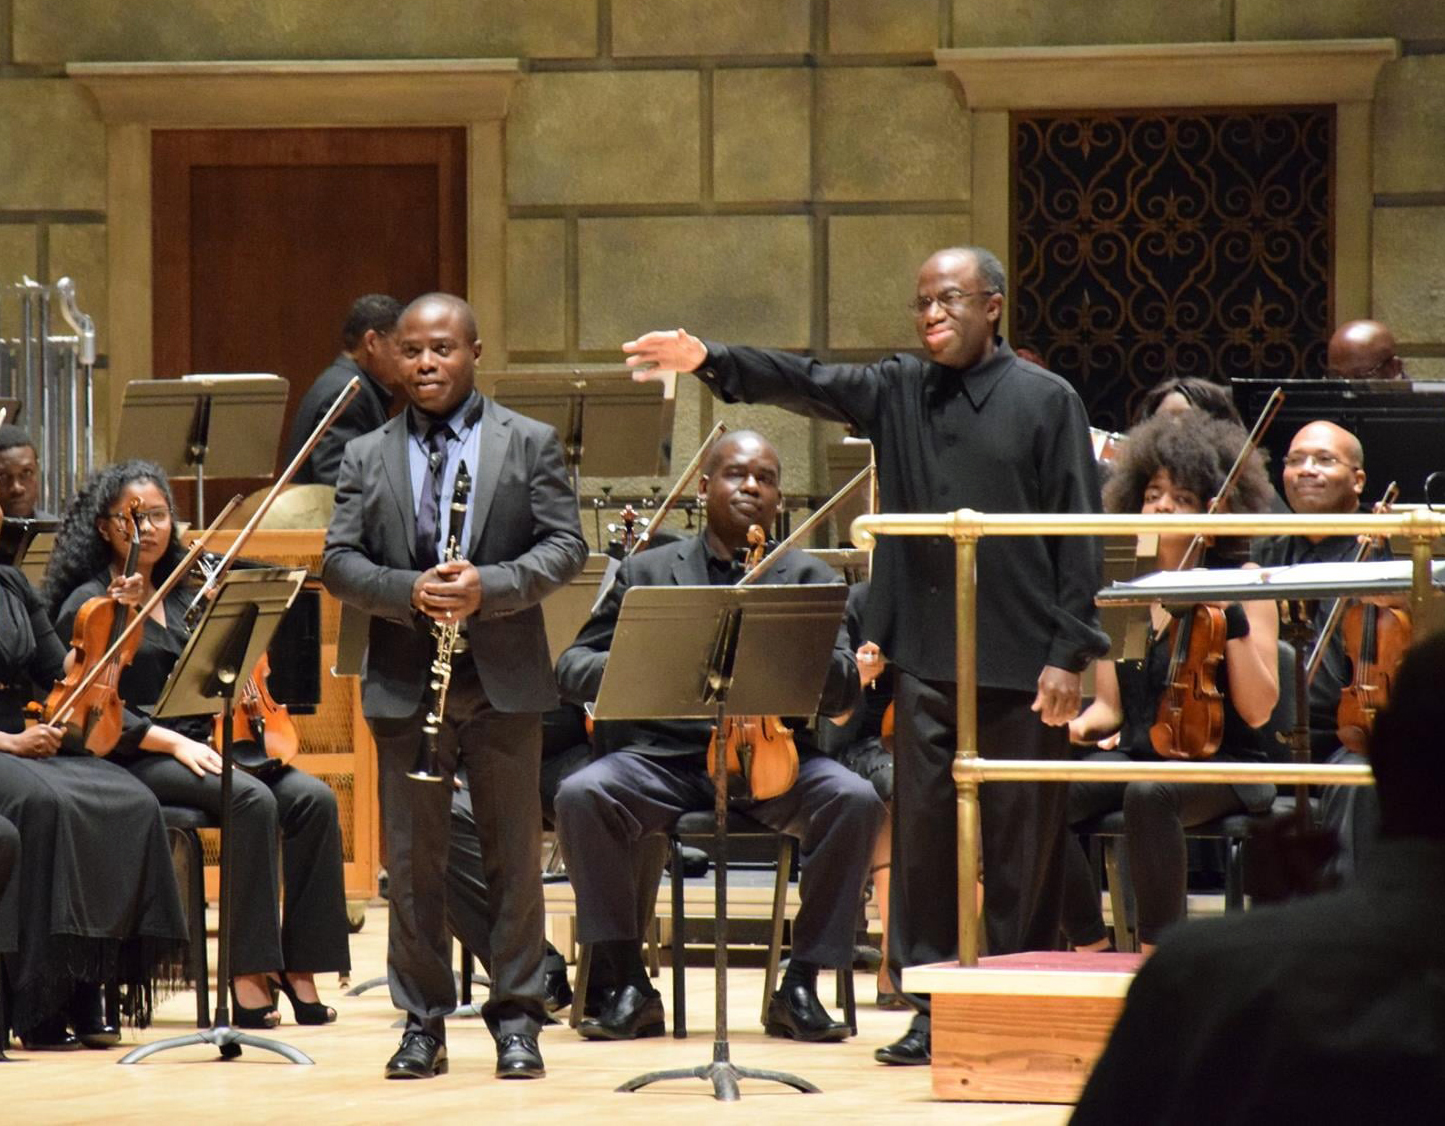 Anthony McGill at Gateways Music Festival with Michael Morgan conducting